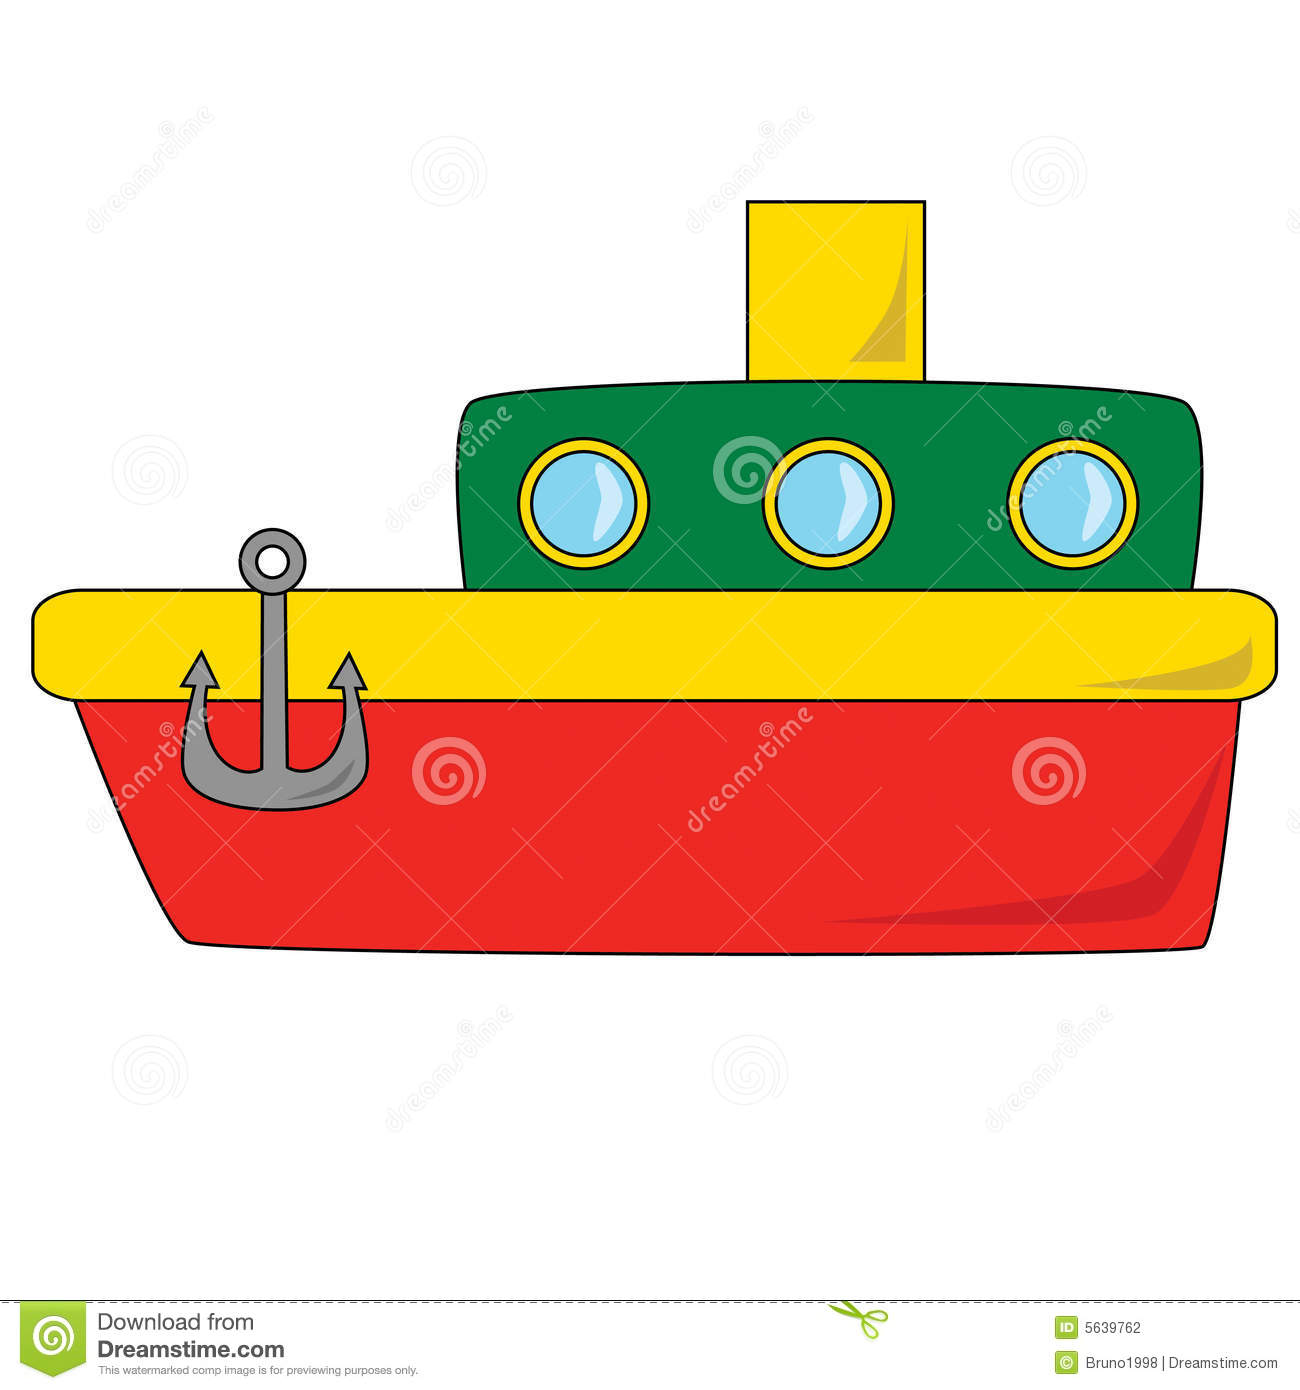 Vector illustration of a red and green cartoon boat